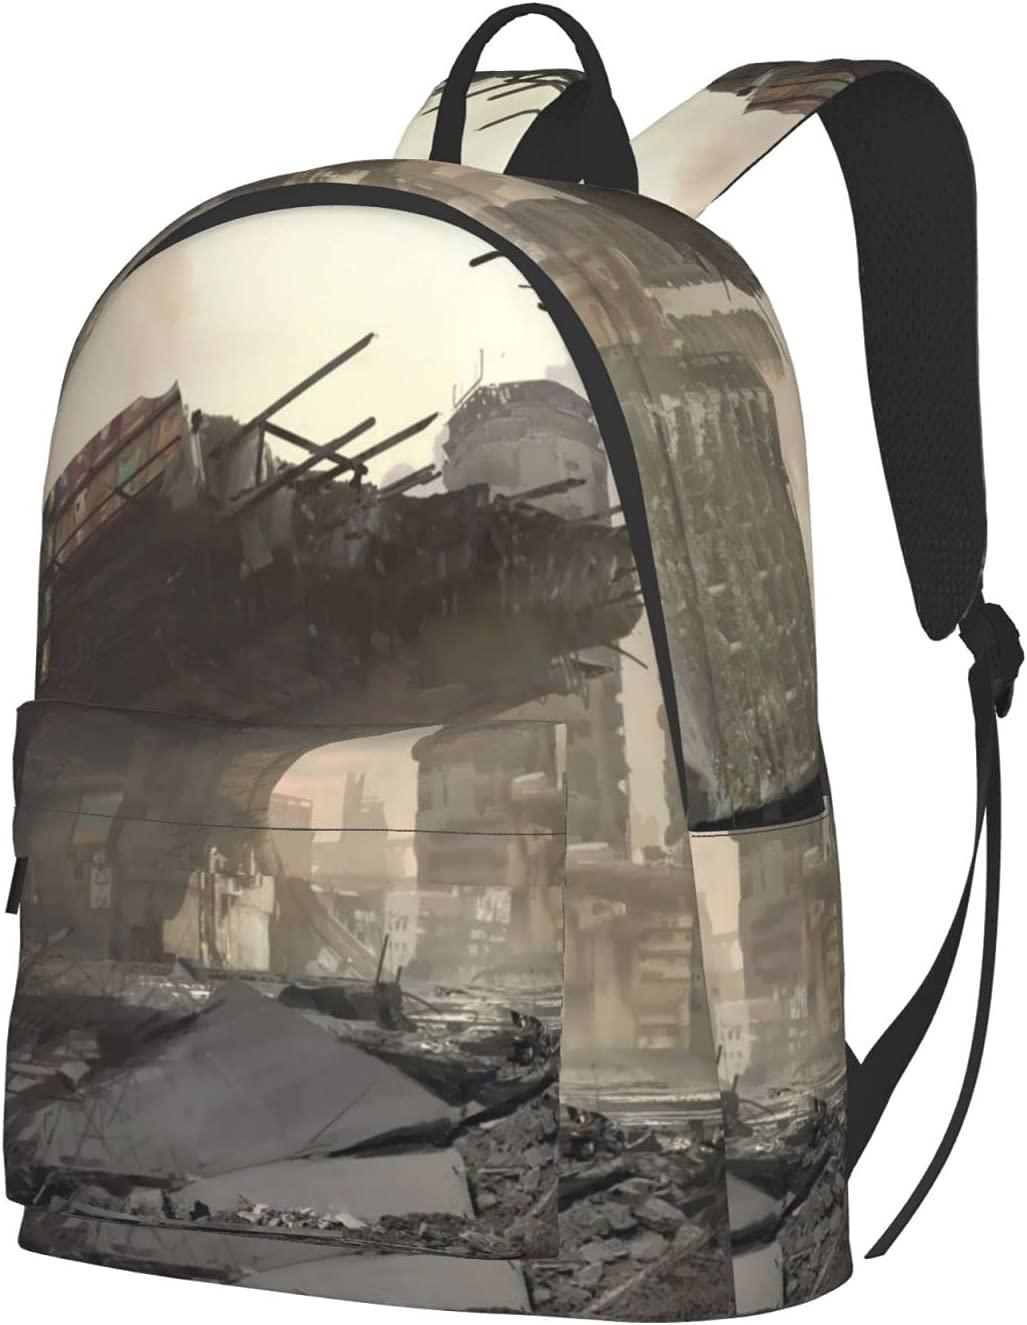 Large Super special price Capacity Backpack Water-Resistant Deluxe Small Purse Sho